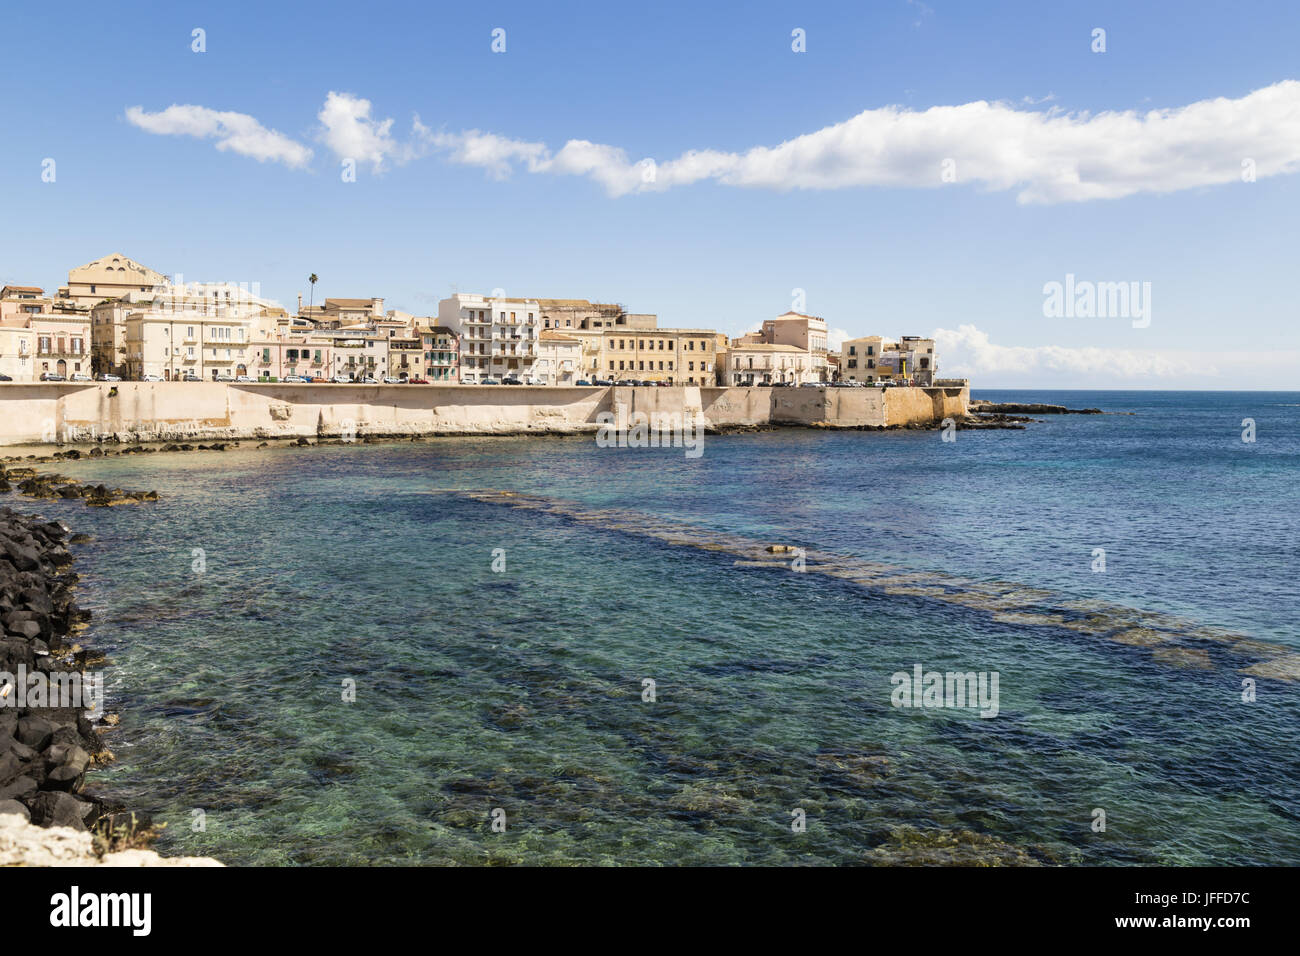 old town of Syracuse, Sicily - Stock Image